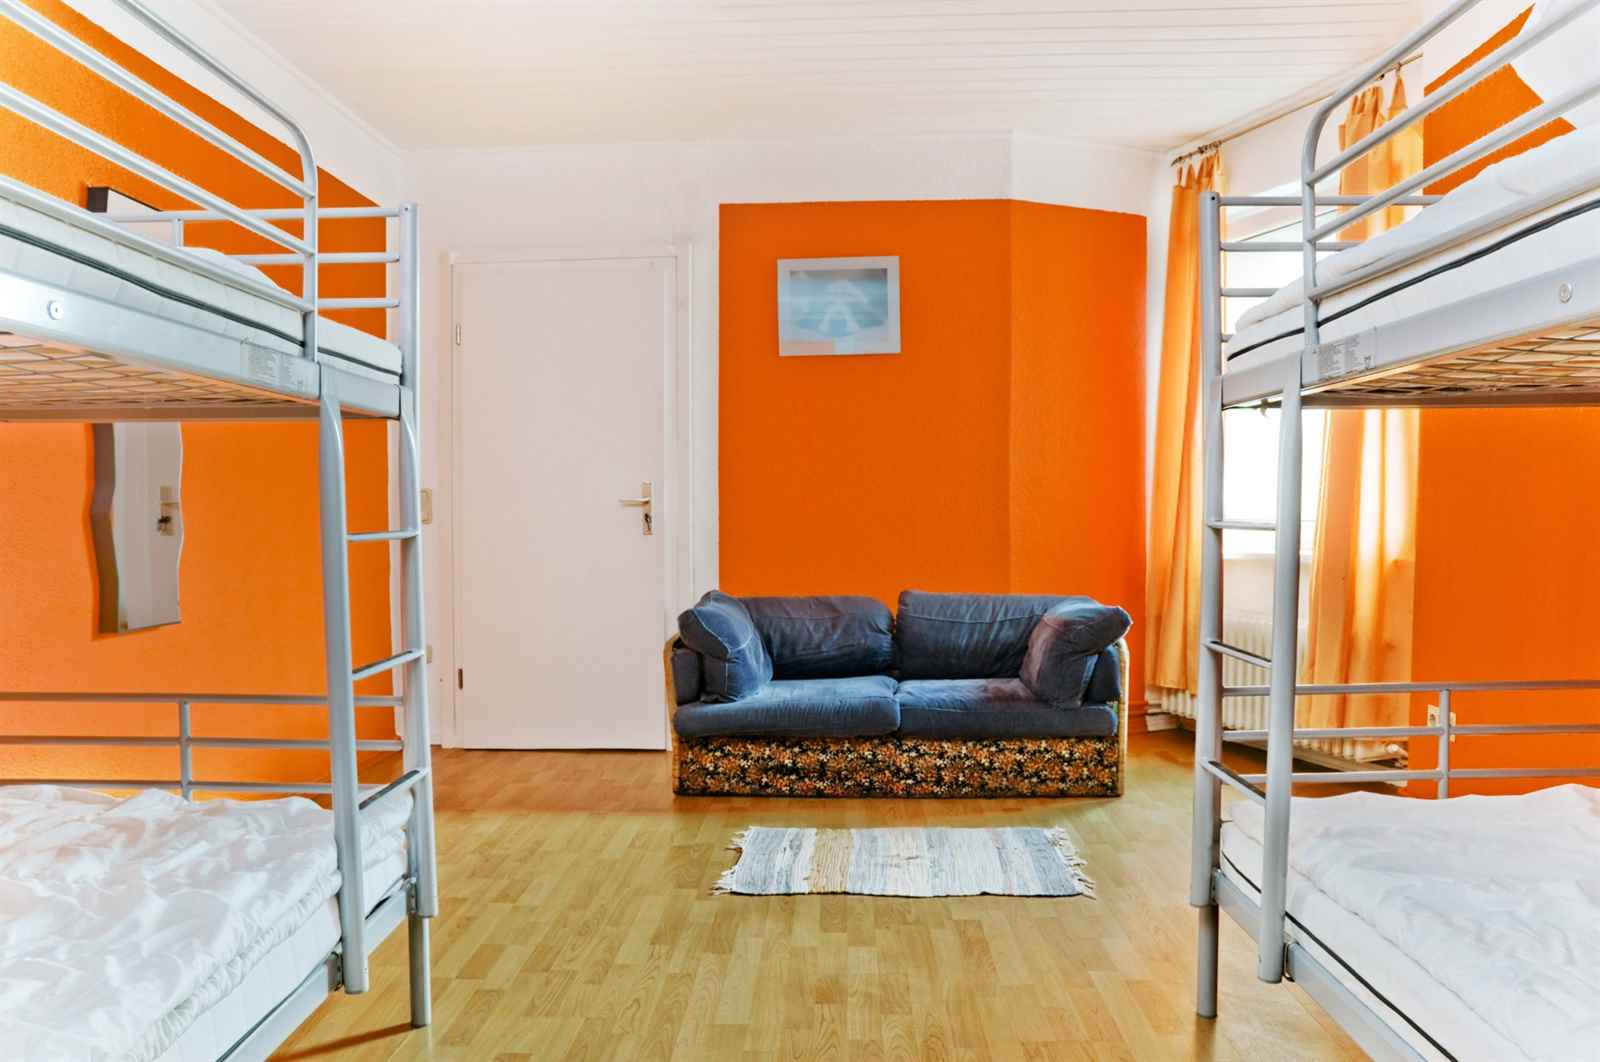 /sleep-cheap-hostel-berlin/book